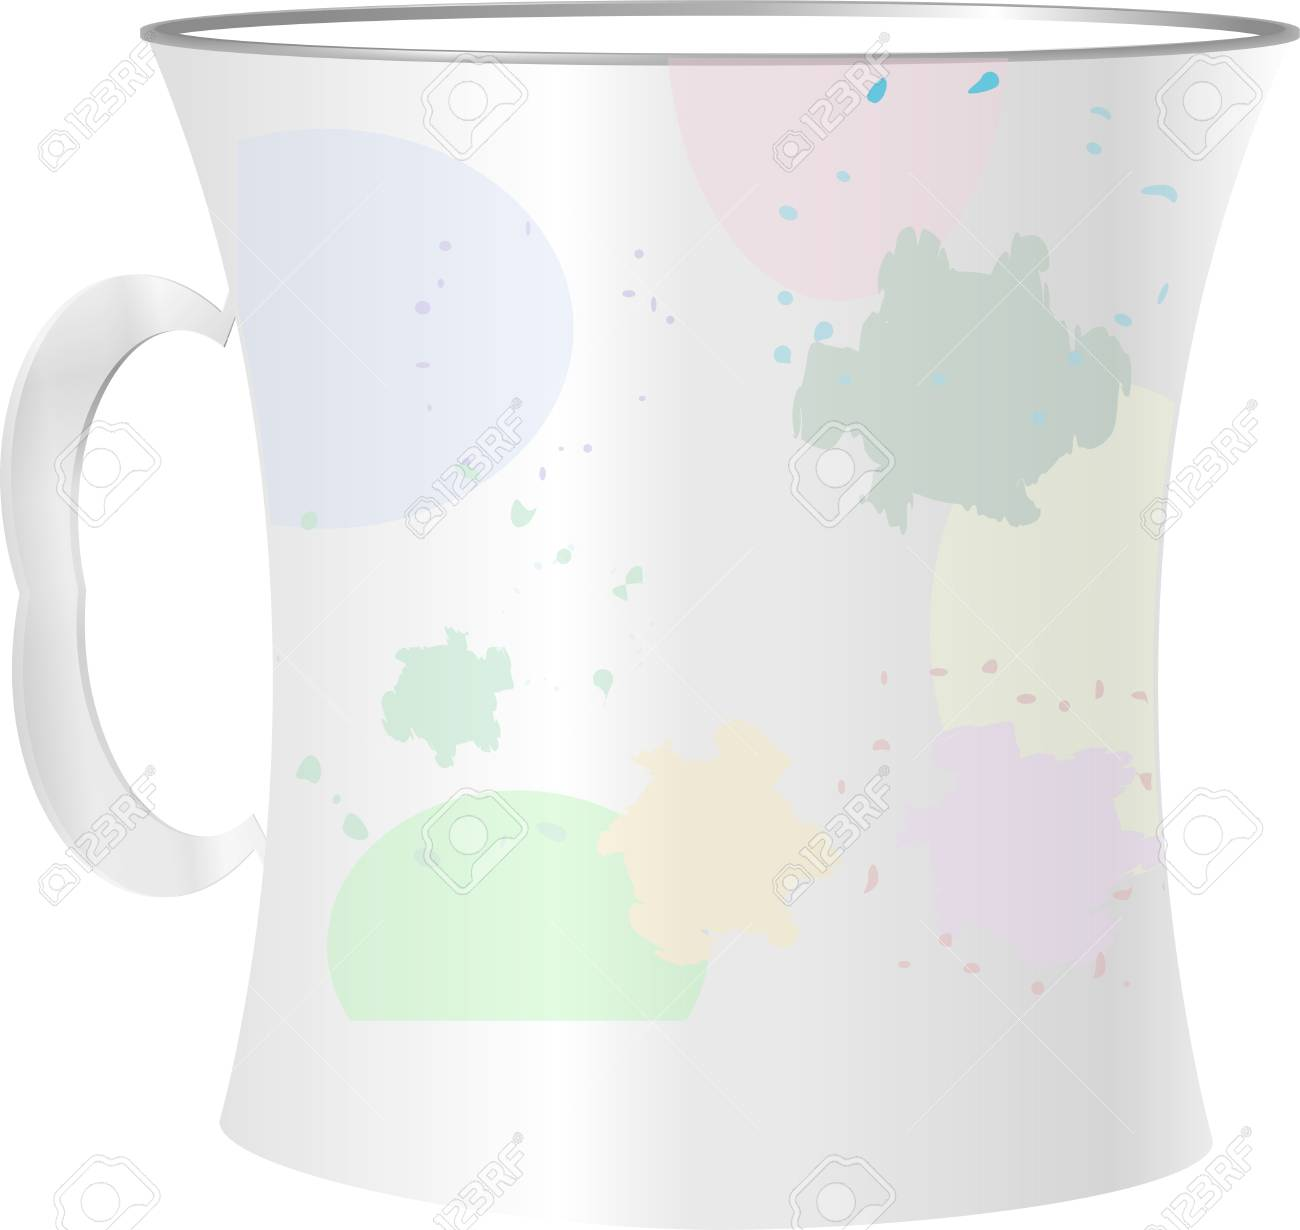 close up of empty used coffee cups and blots on white background Stock Photo - 19435688